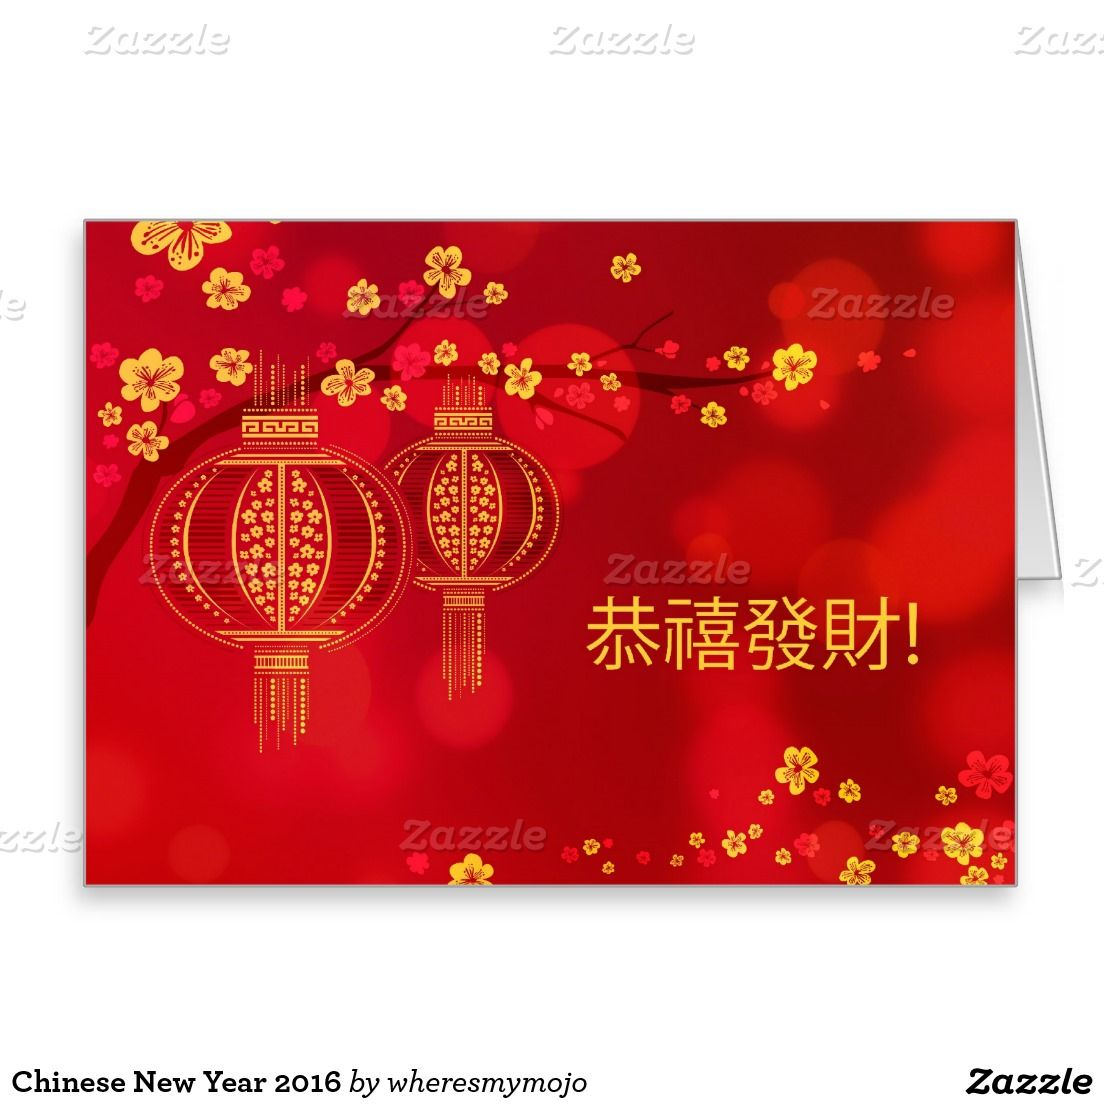 Chinese new year 2018 greeting card chinese new year 2016 greeting card kristyandbryce Images